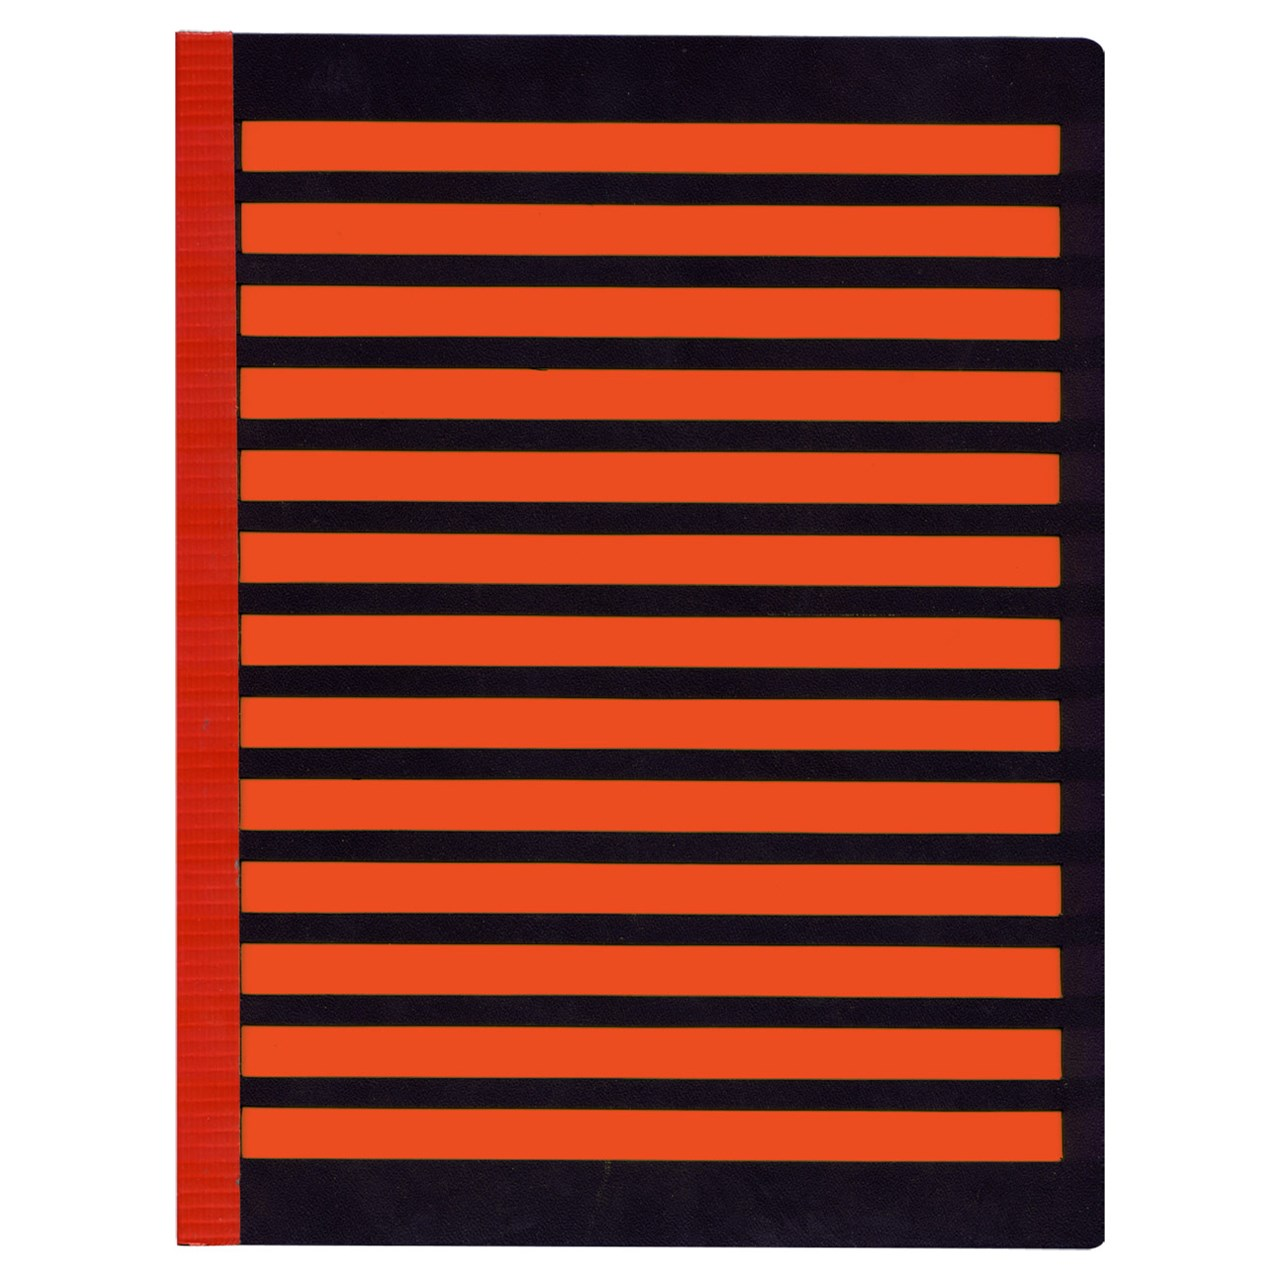 Full Page Fold-Over Writing Guide - Black-Orange